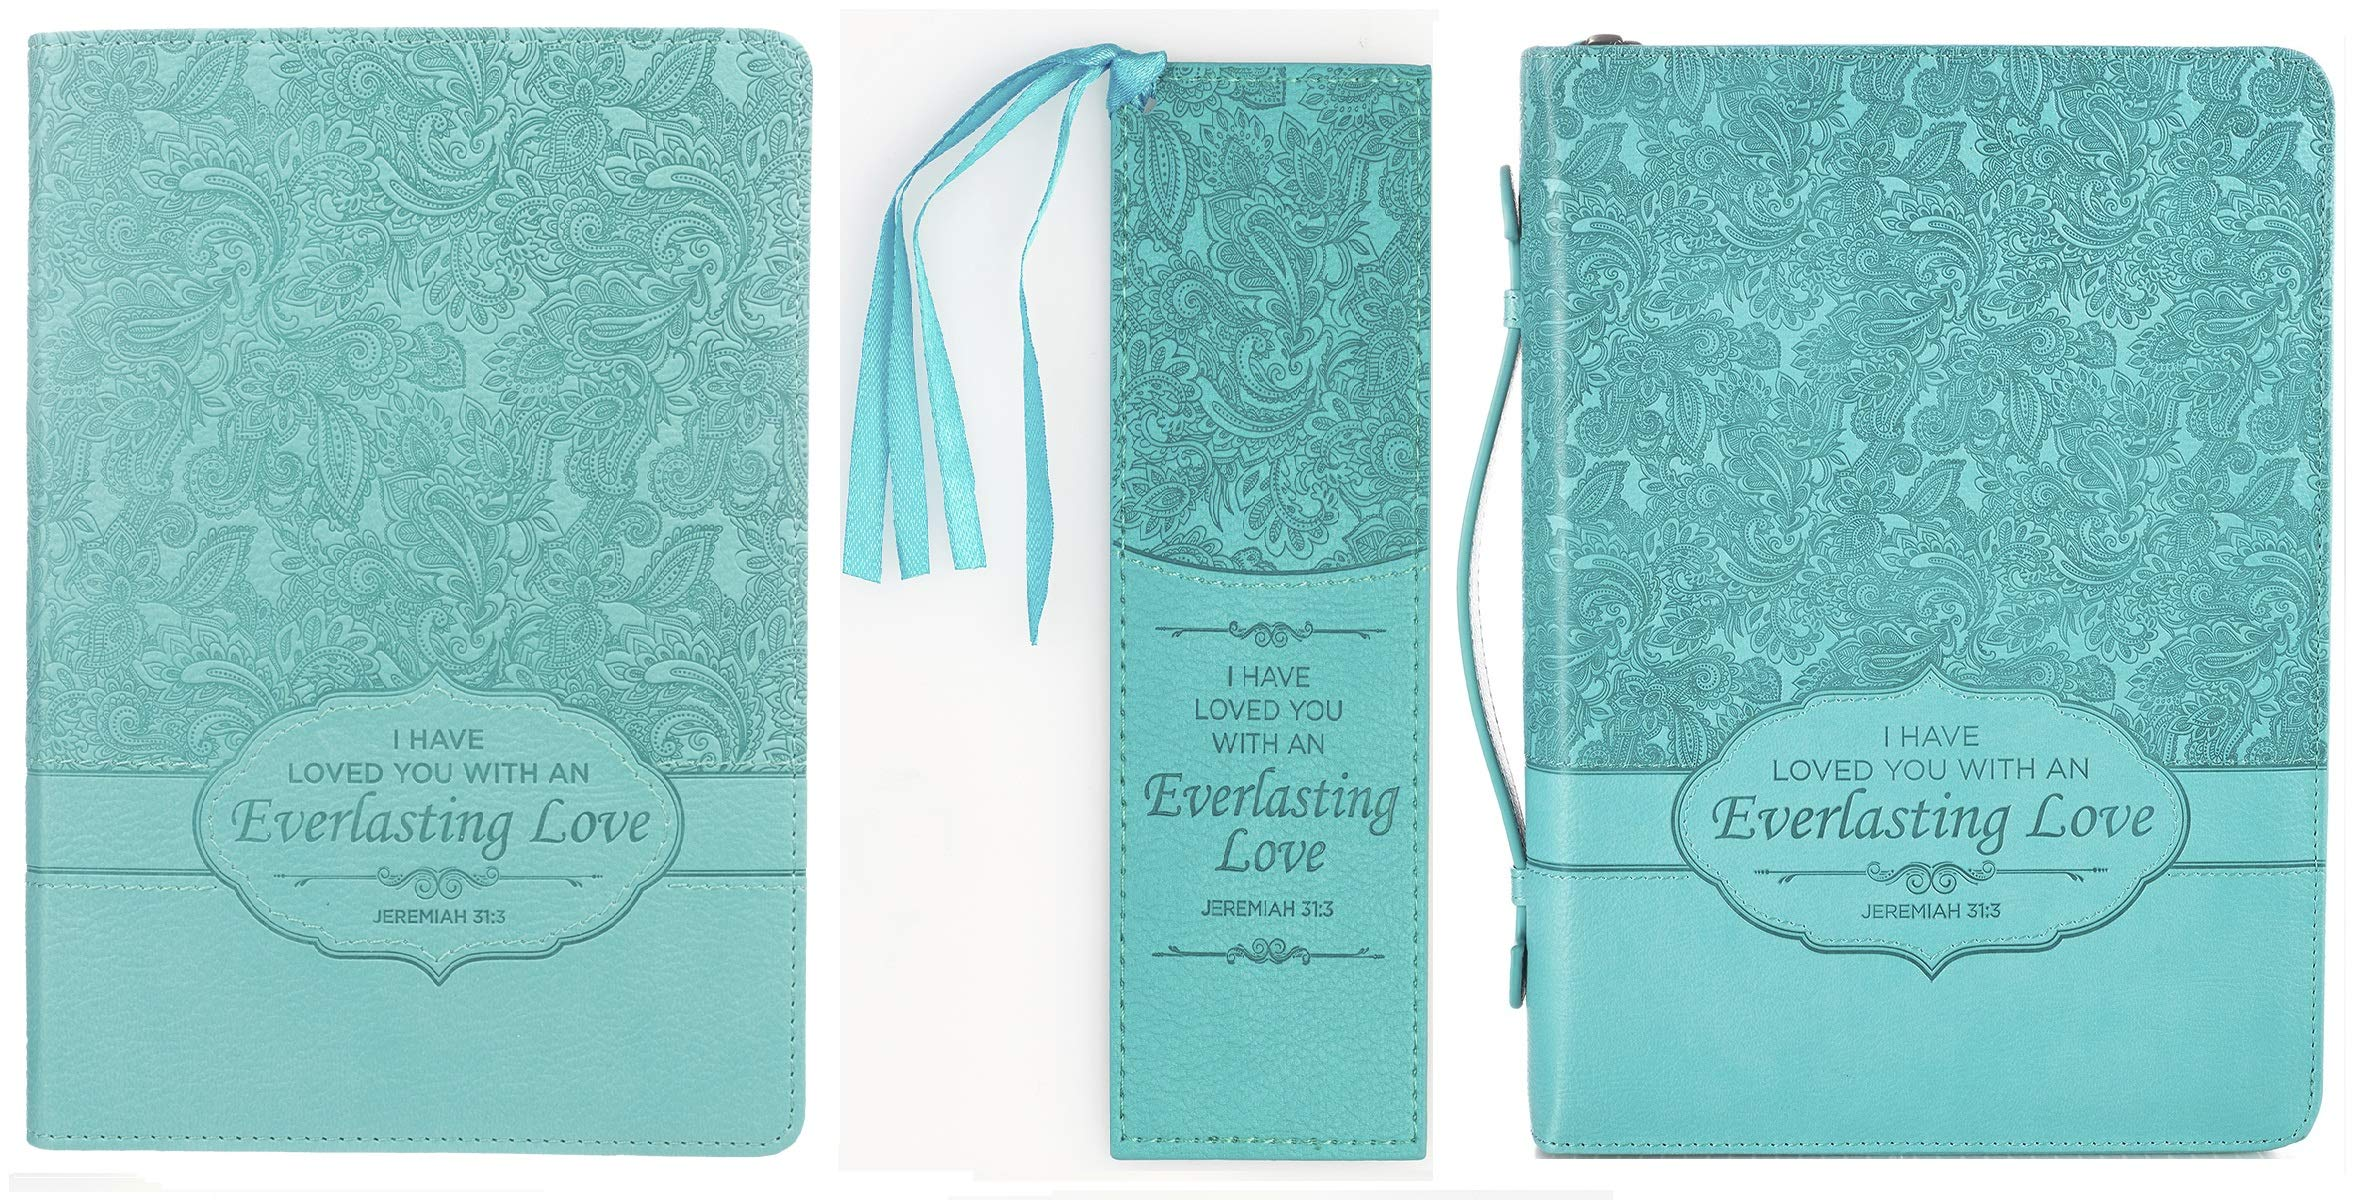 Faux Leather Large Bible Cover, Bookmark, Journal Bundle for Women | Floral Print with Scripture Verse on Turquoise Background | by Christian Art Gifts by Christian Art Gifts